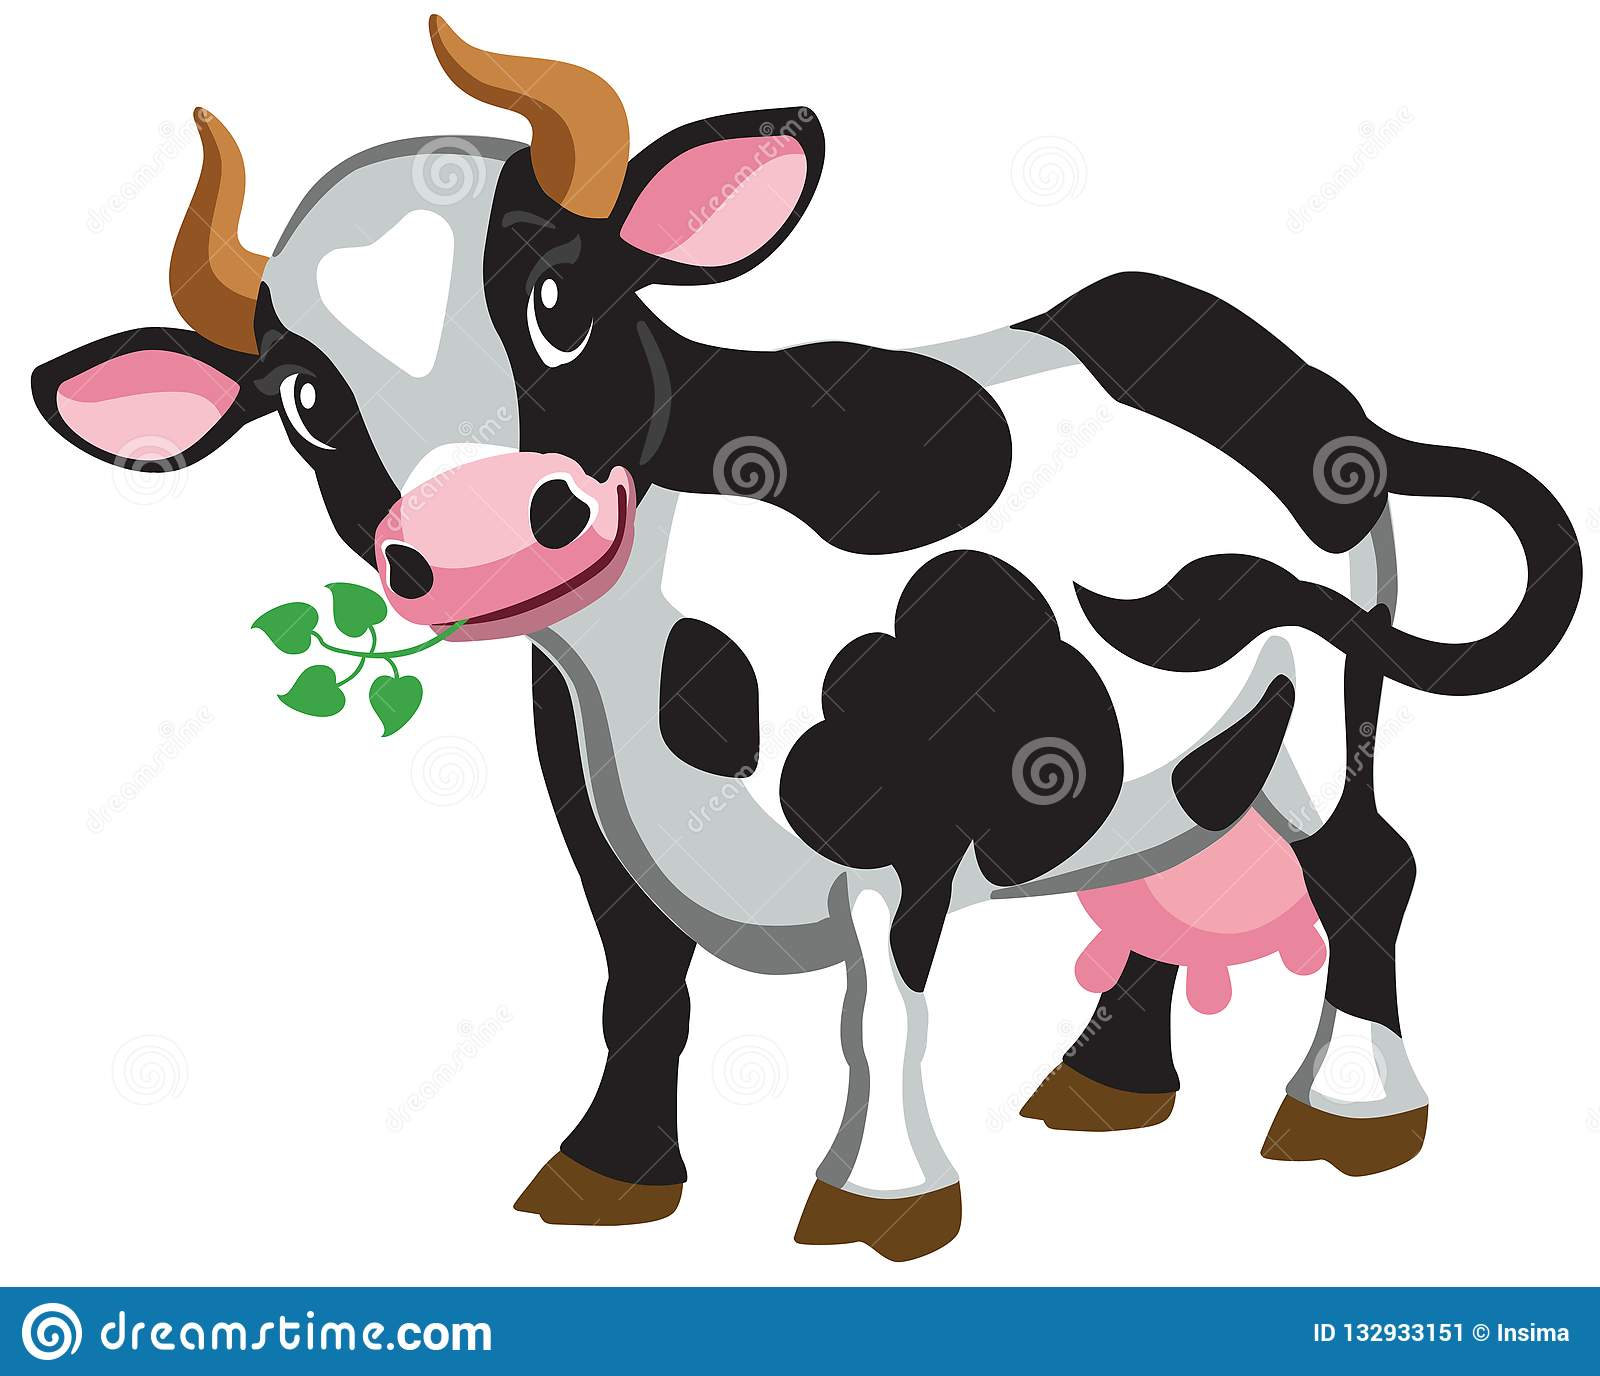 Cattle Animation Royalty-free Clip Art, PNG, 600x528px, Cattle, Animation,  Art, Bull, Carnivoran Download Free